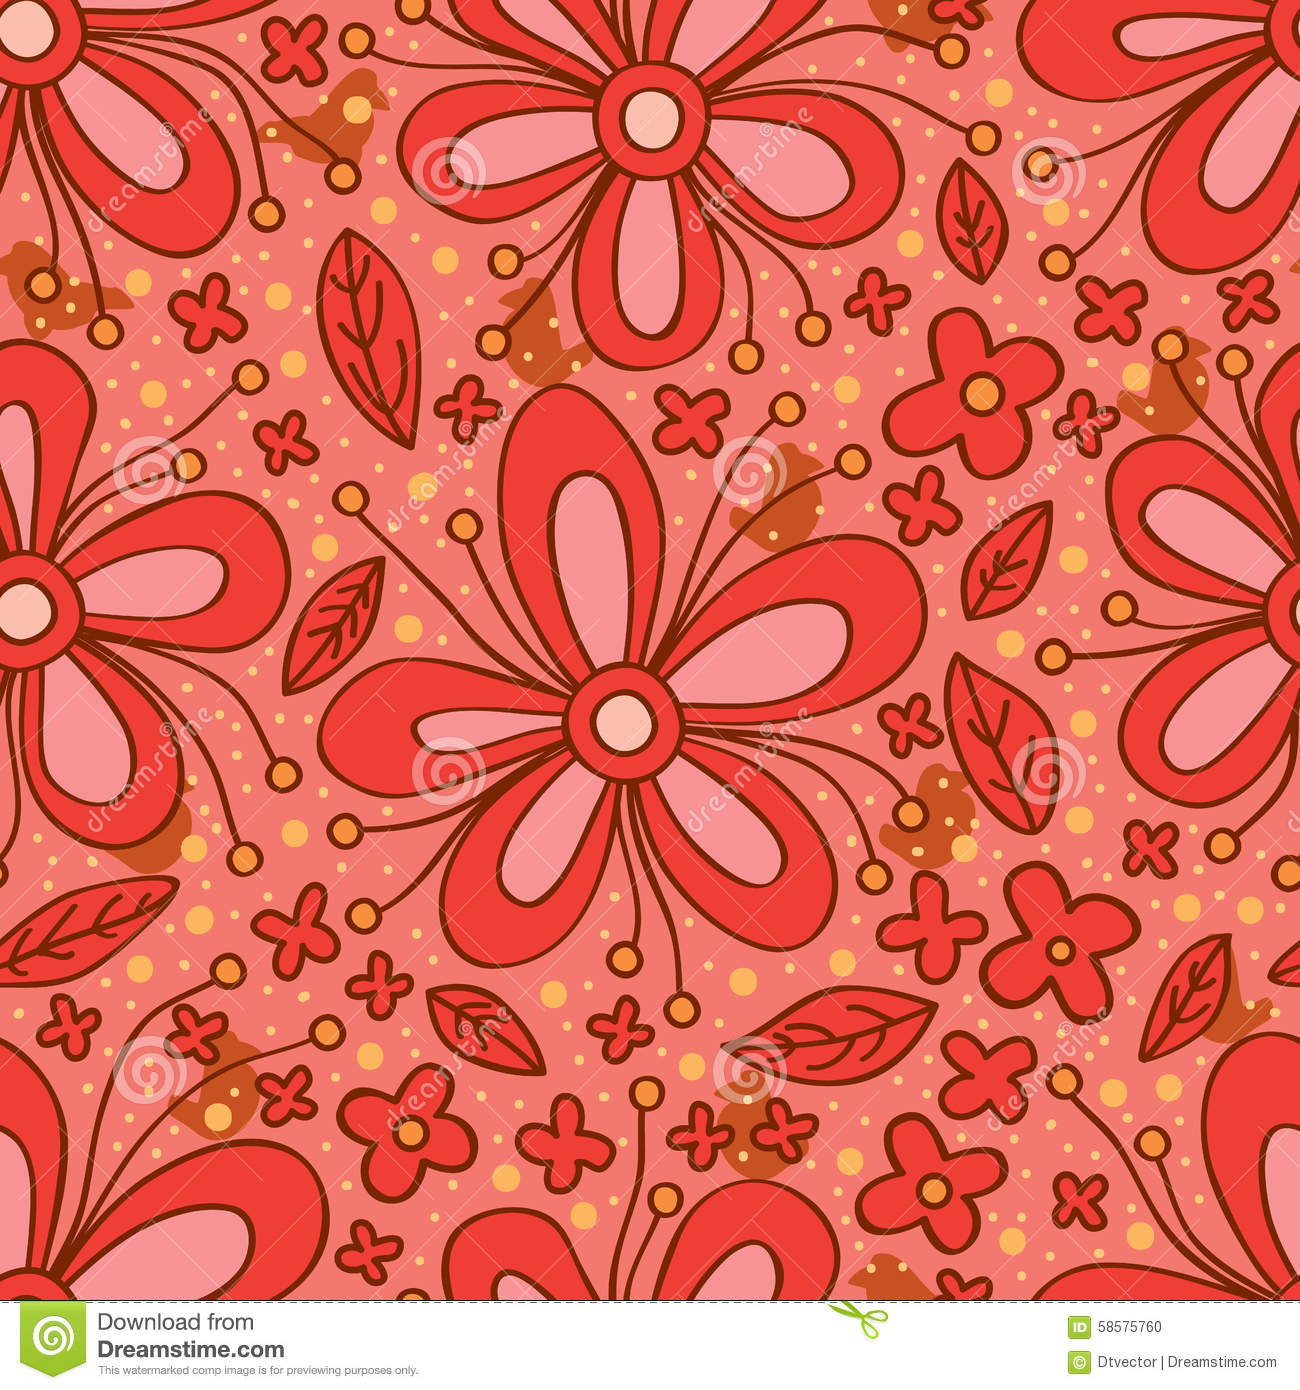 Flower Red Color Seamless Pattern Stock Vector - Illustration of ...